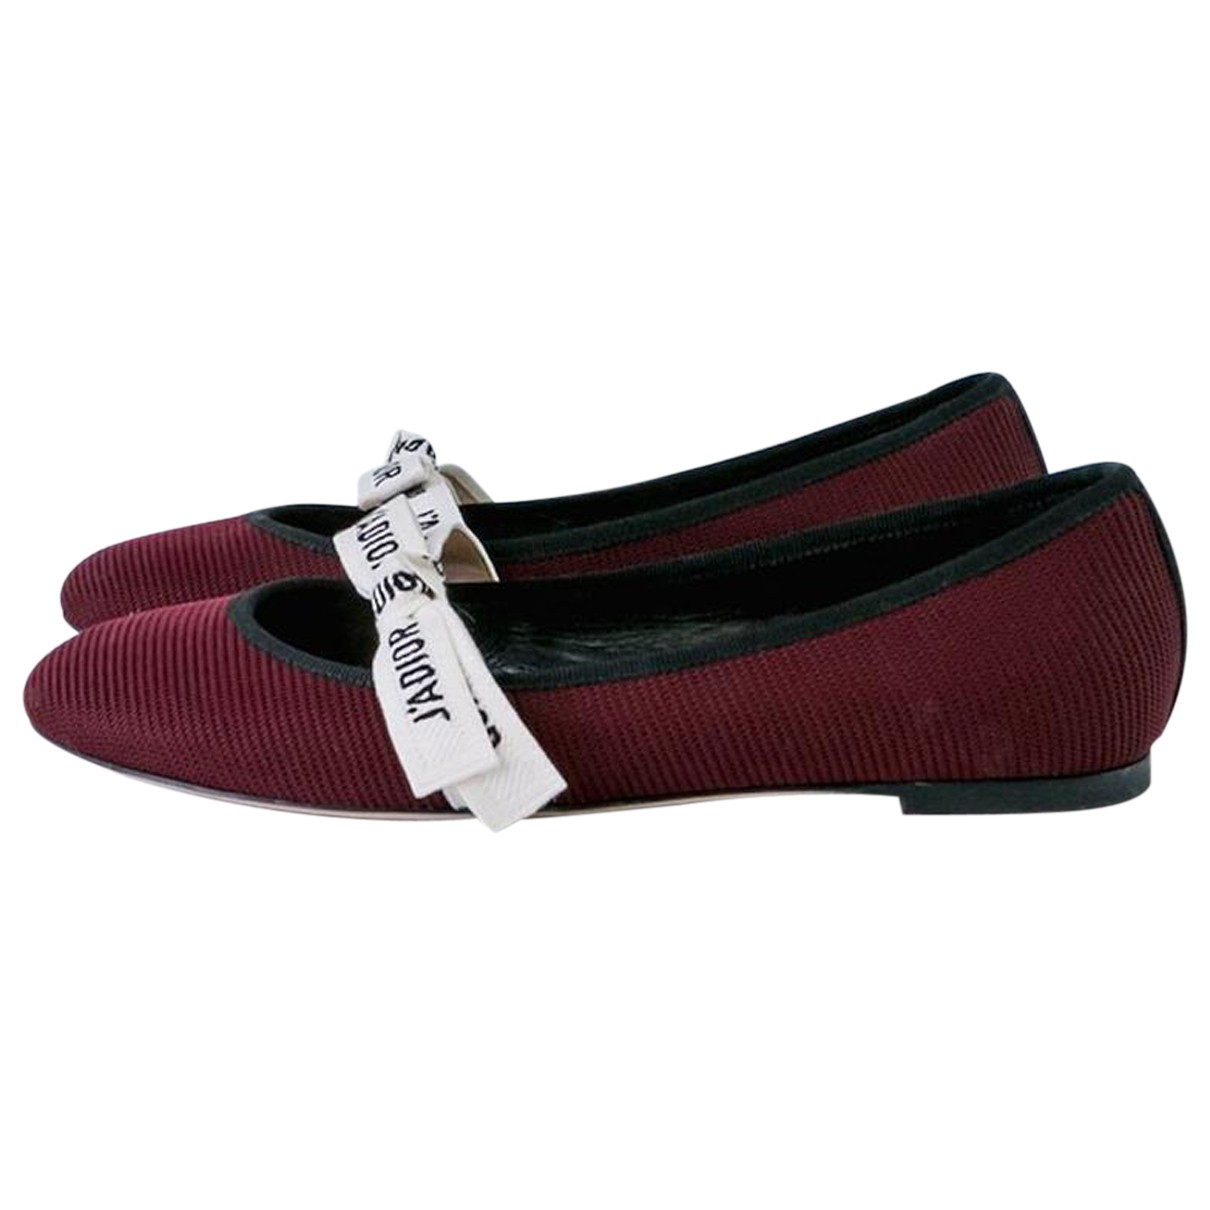 Dior N Burgundy Cloth Ballet flats for Women 38.5 EU